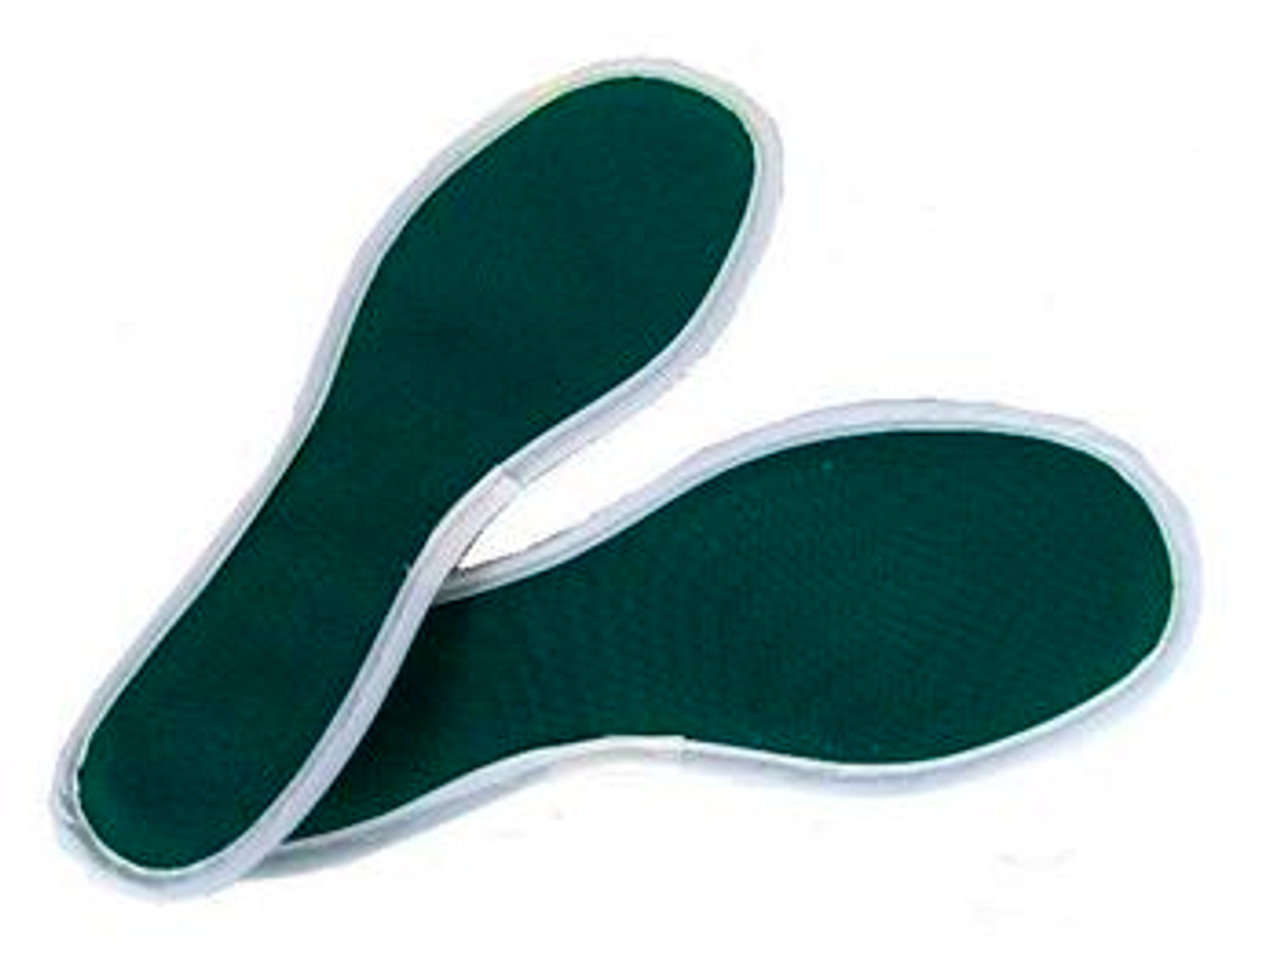 NEW  Canadian Forces Mukluk Insoles Size 6N